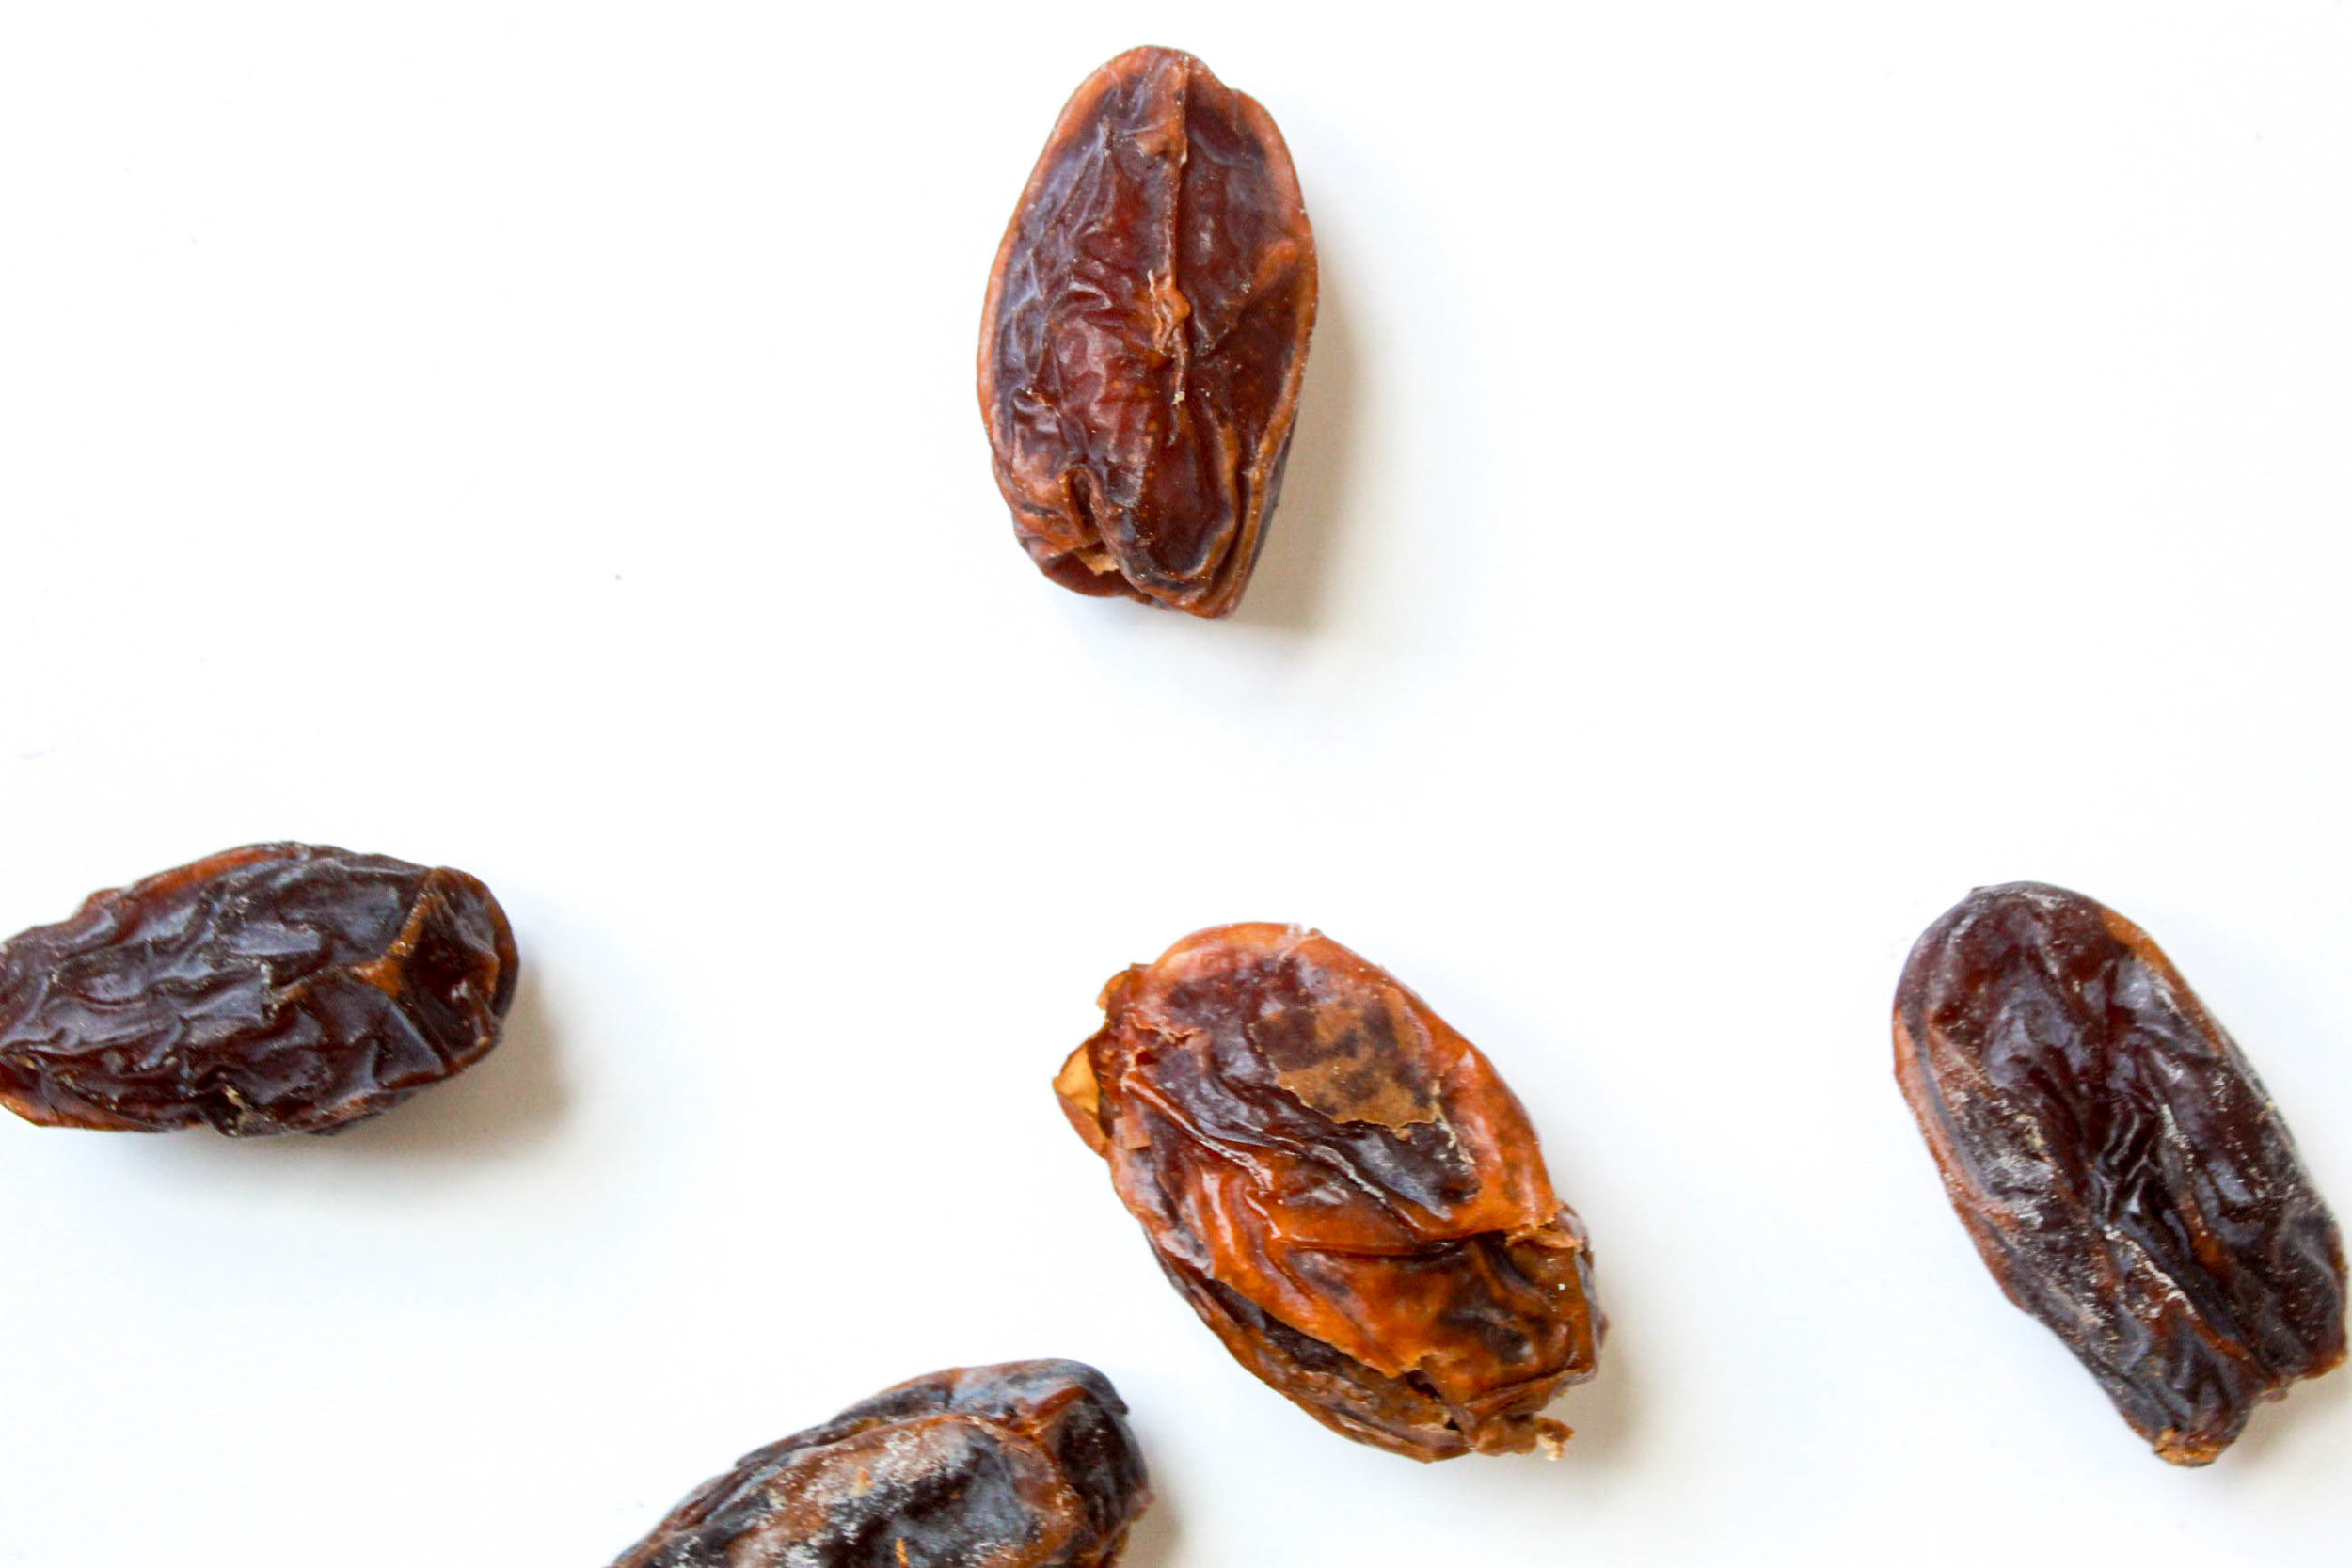 We only use Medjool dates from California. Medjool dates are the sweetest and moistest of dates, and they also have the best flavor. Dates are high in soluble fiber which supports healthy digestion by drawing fluid into the digestive tract. They're a rich source of minerals like copper, manganese, magnesium, and potassium that support bone health. Our dates are a great source of energy … and are perfectly sweet.